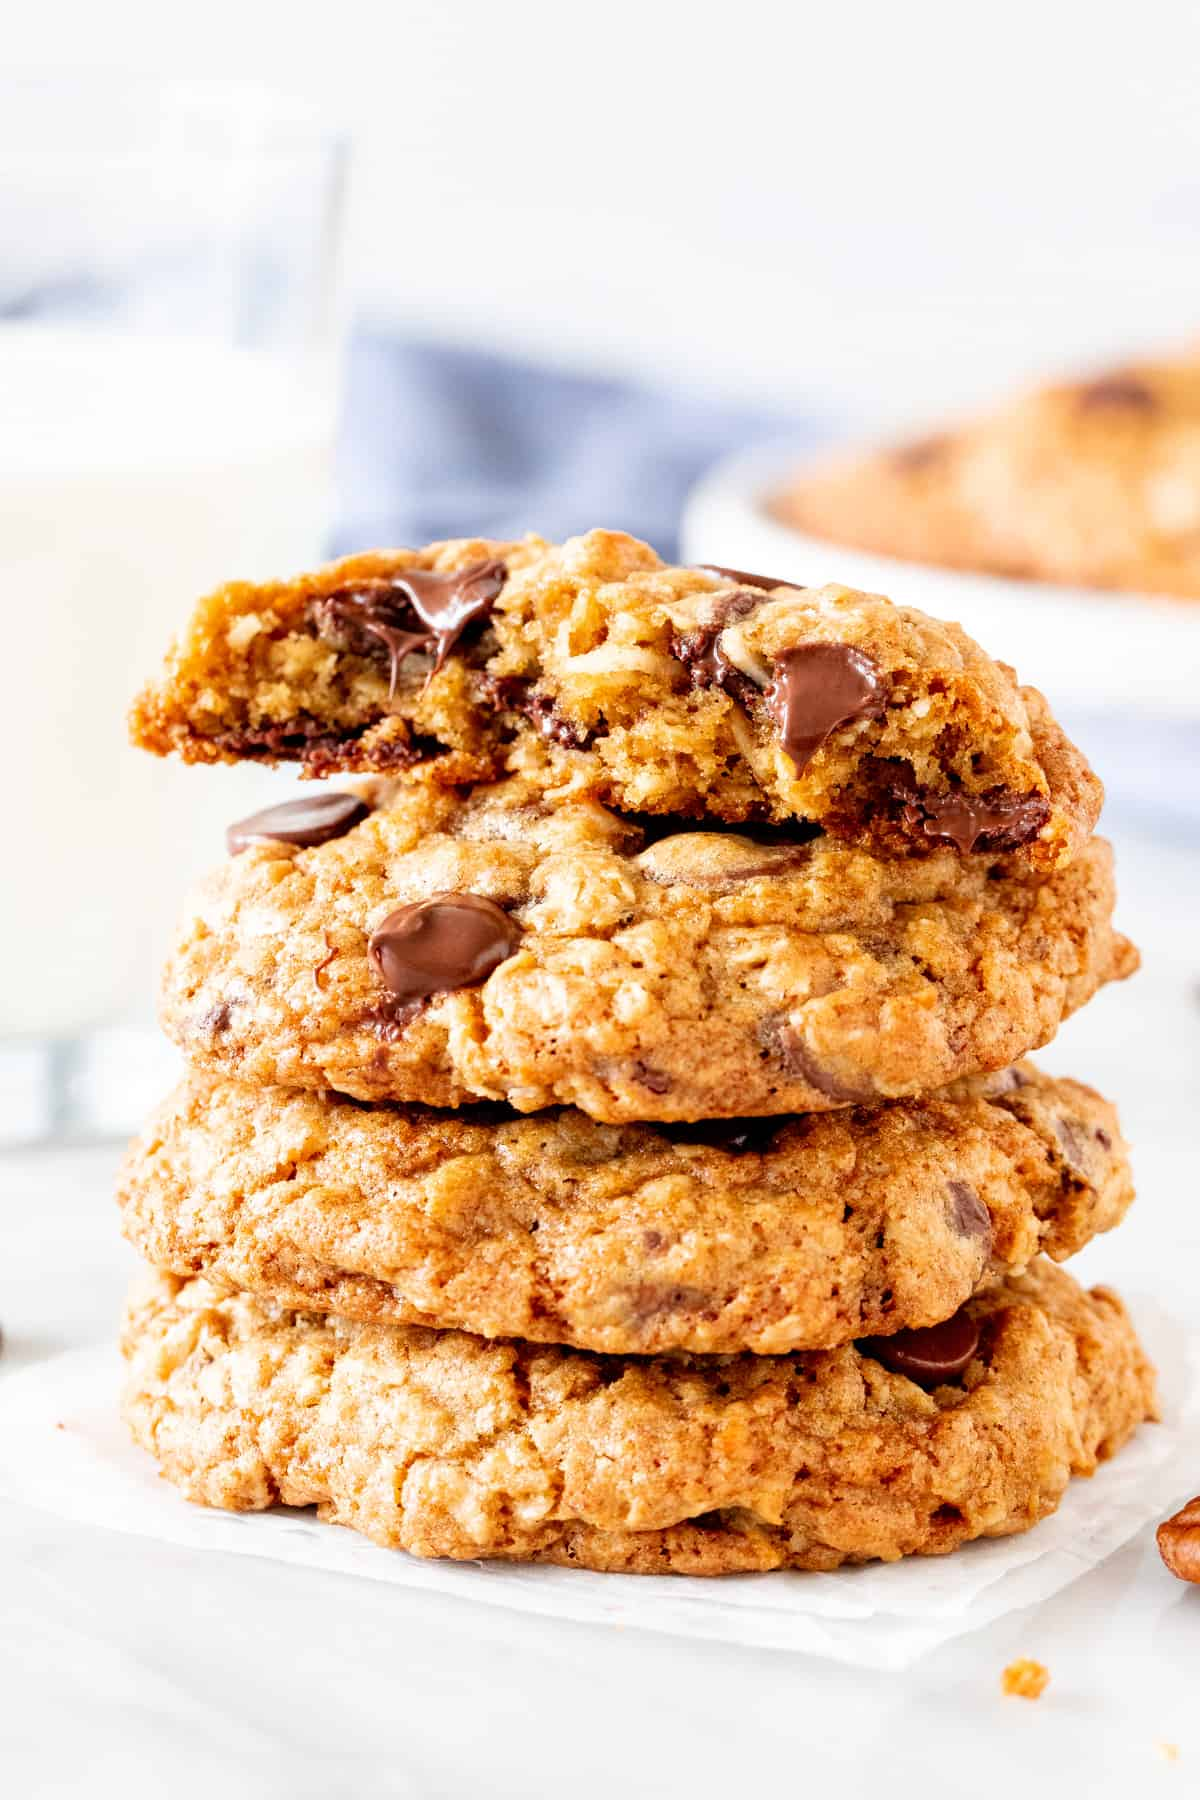 Stack of oatmeal coconut chocolate chip cookies, with the top cookie broken in half